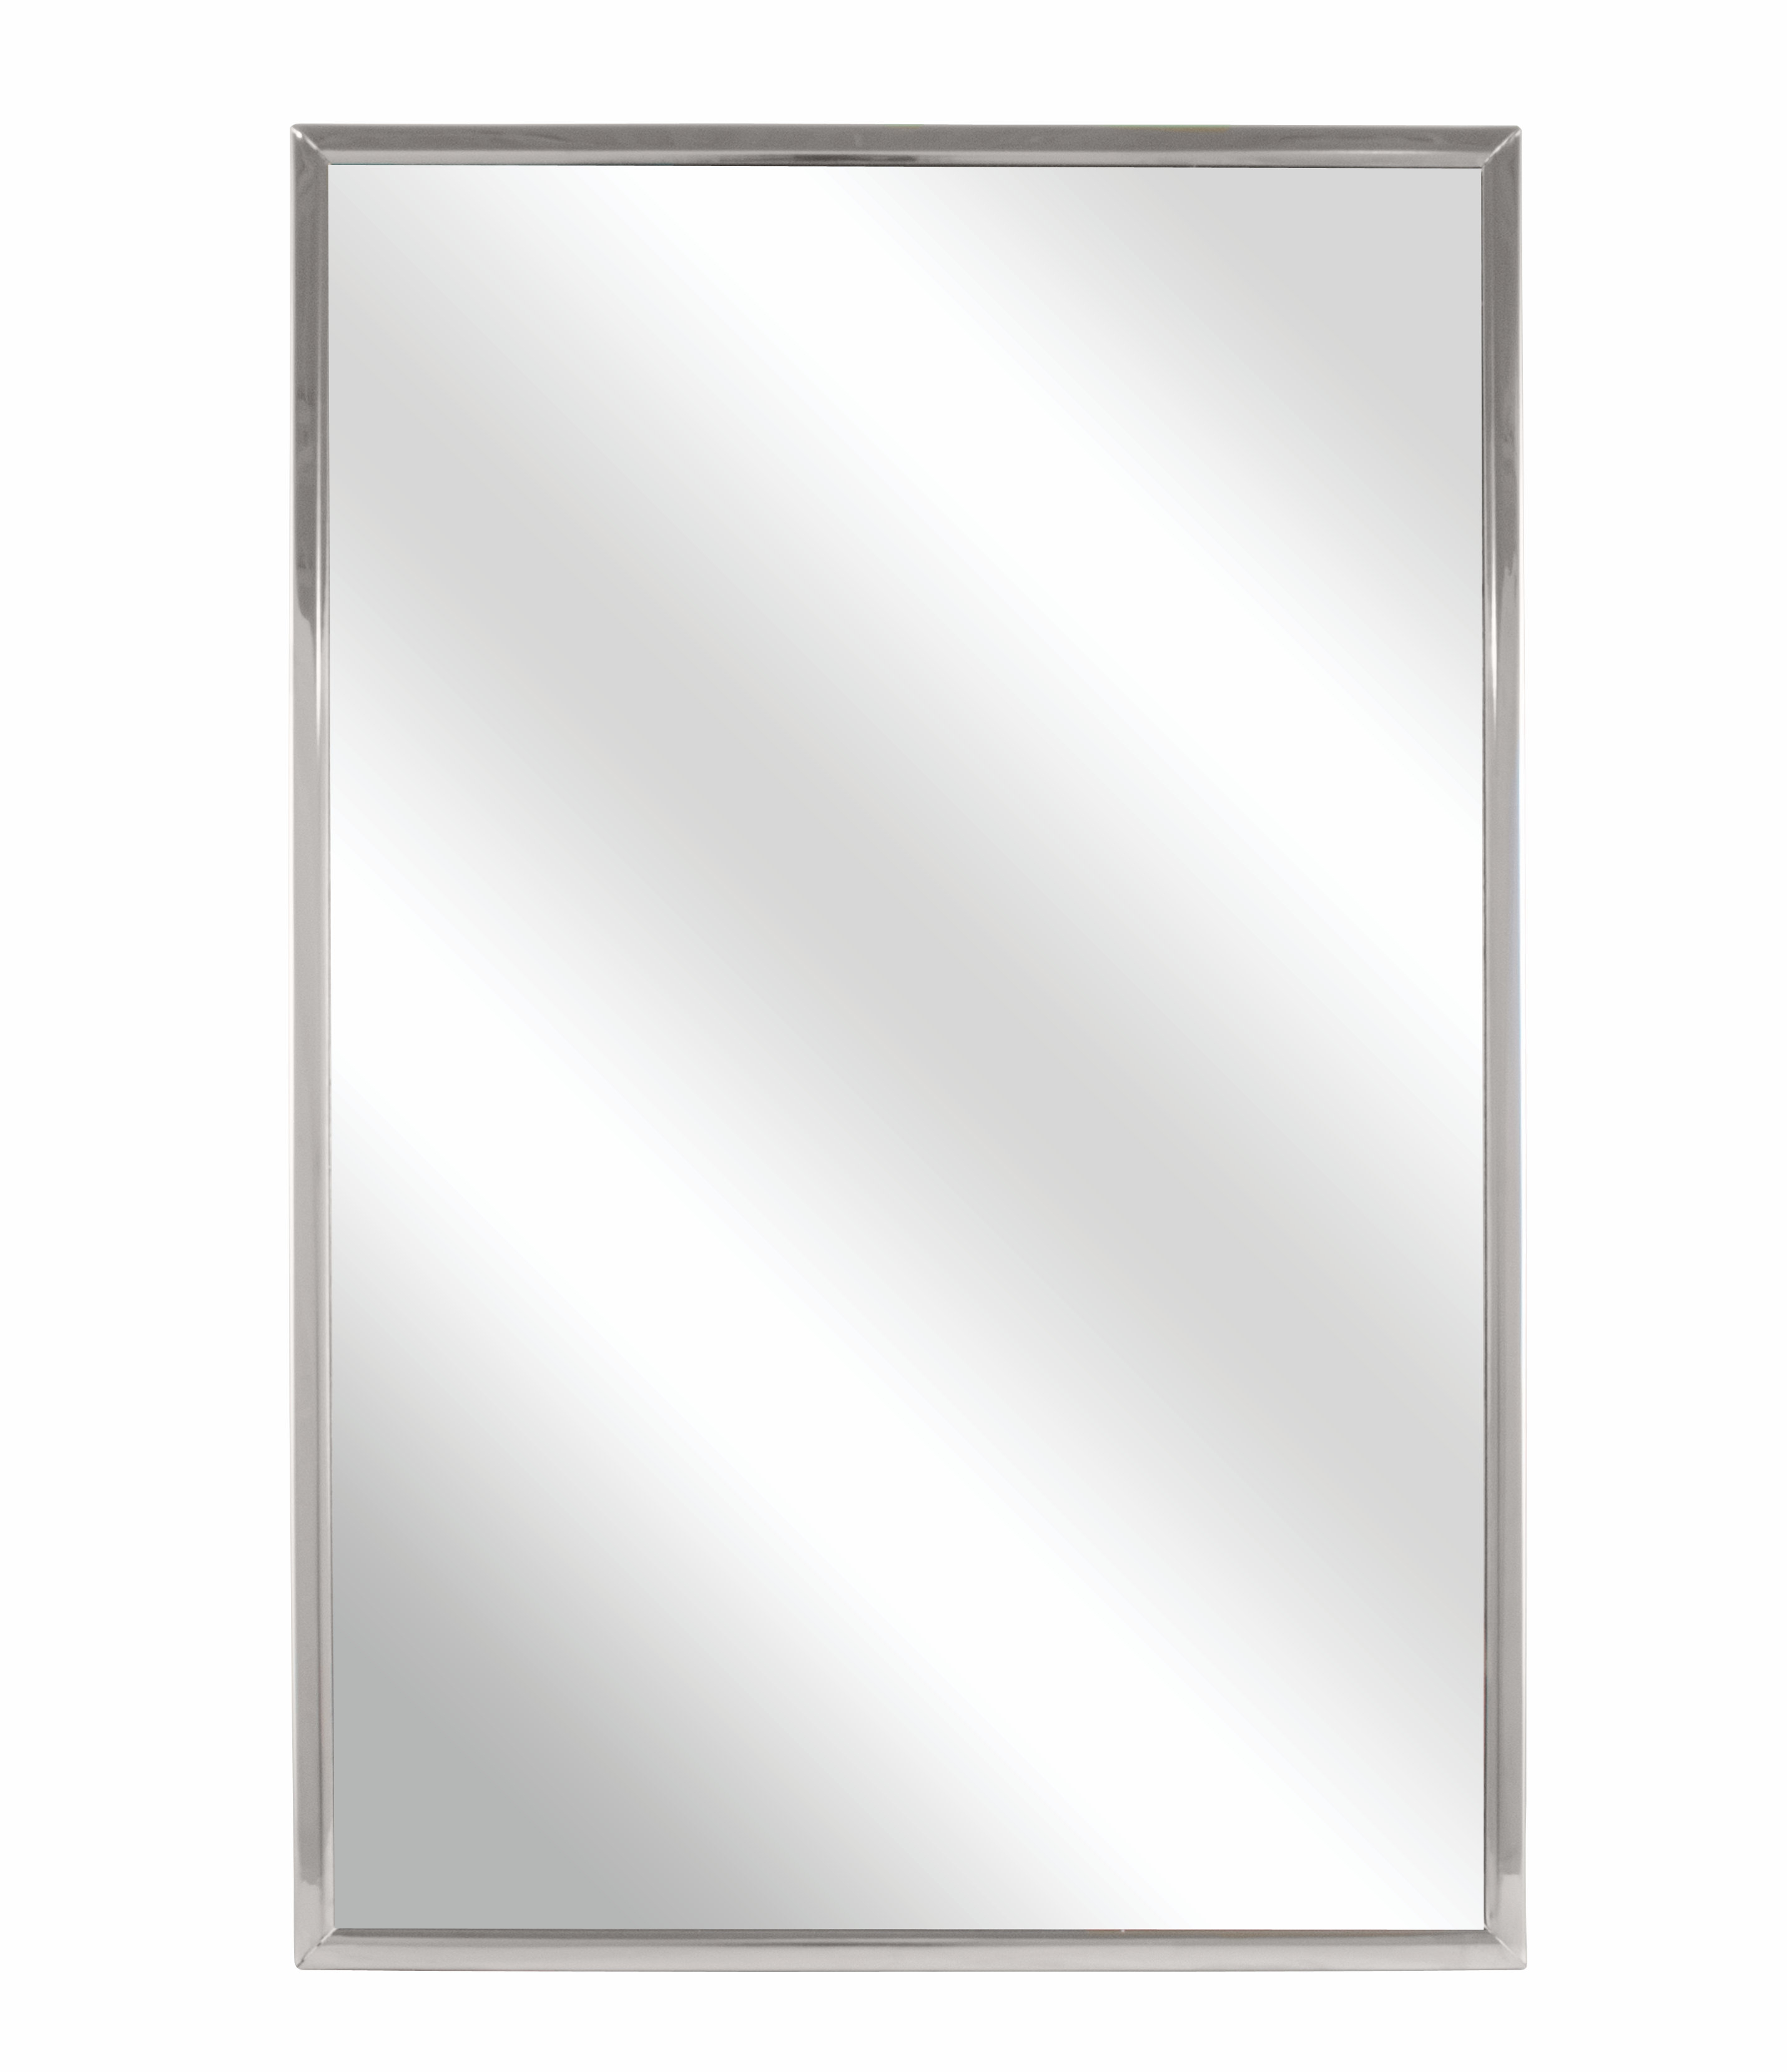 Allmodern Regarding Pennsburg Rectangle Wall Mirror (View 12 of 20)